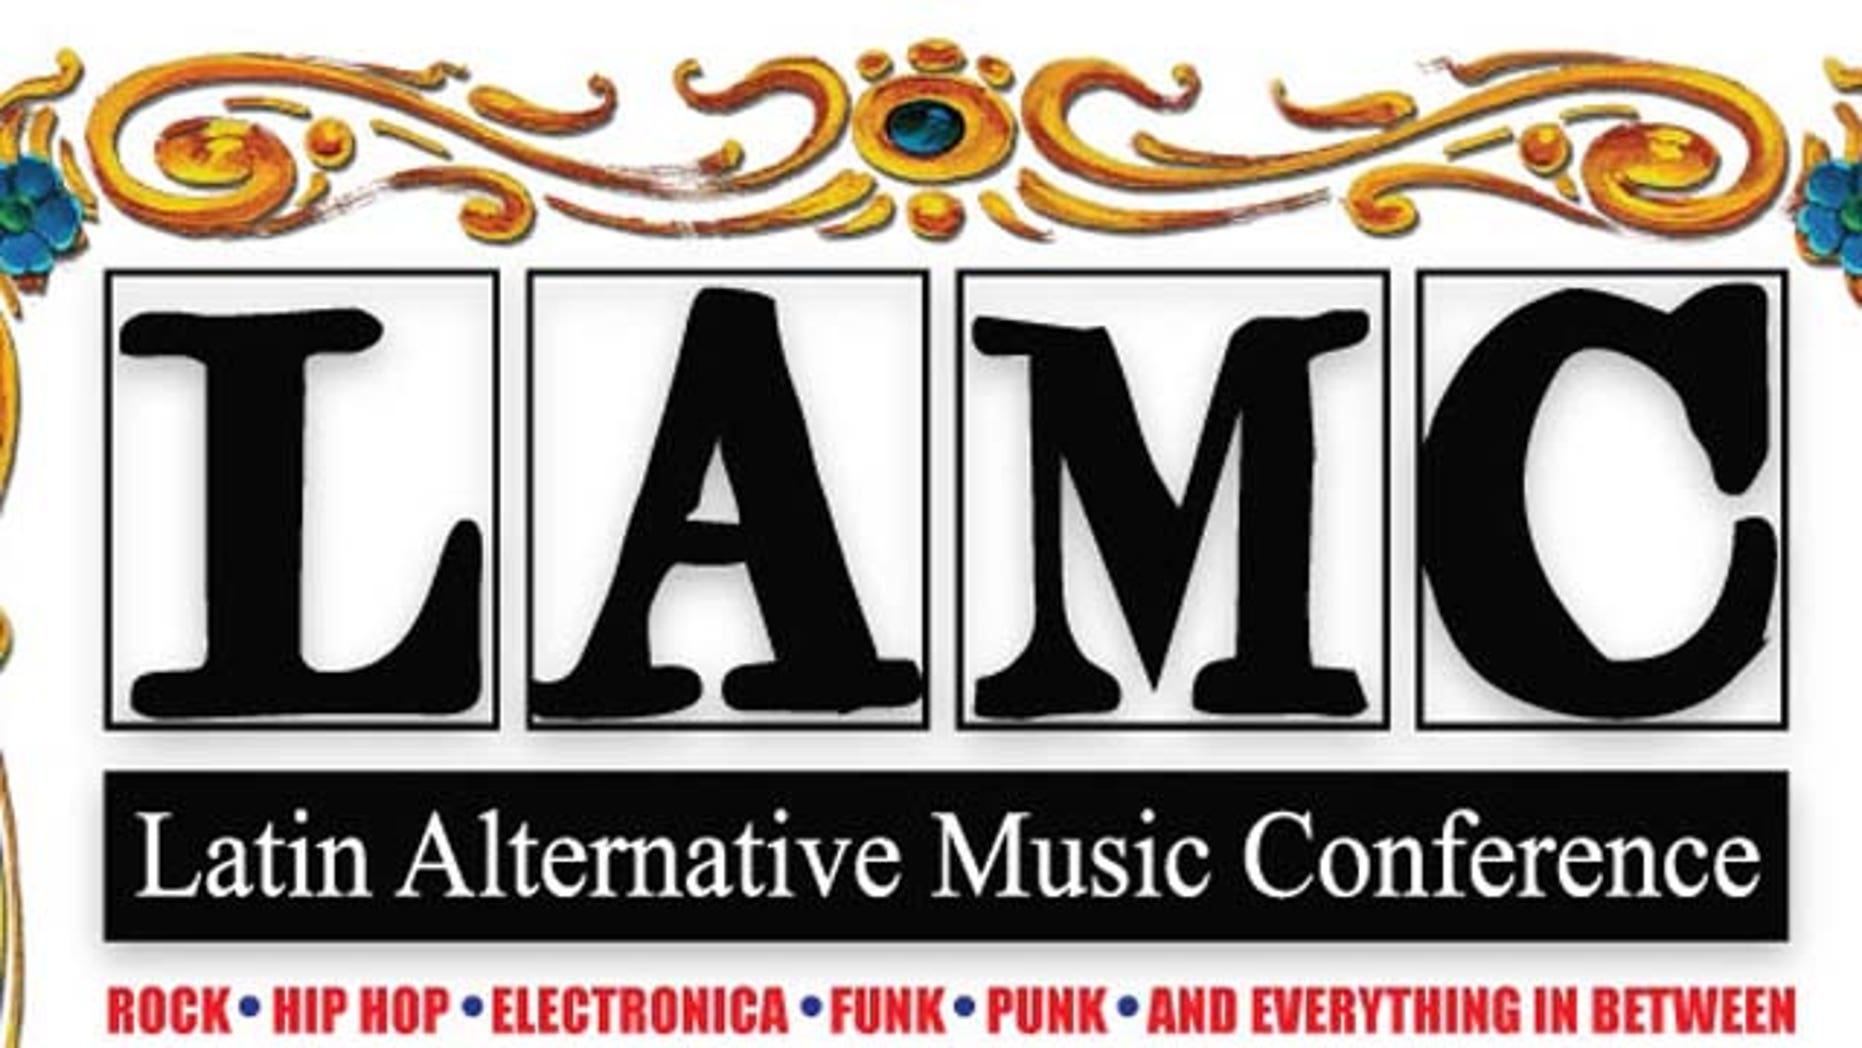 July 1, 2011: The Latin Alternative Music Conference (LAMC) runs from Wed. July, 6 until Sat. July 9, 2011. Scheduled performes include Colombian group Rita Indiana, Choc Quib Town, and Jarabe de Palo.